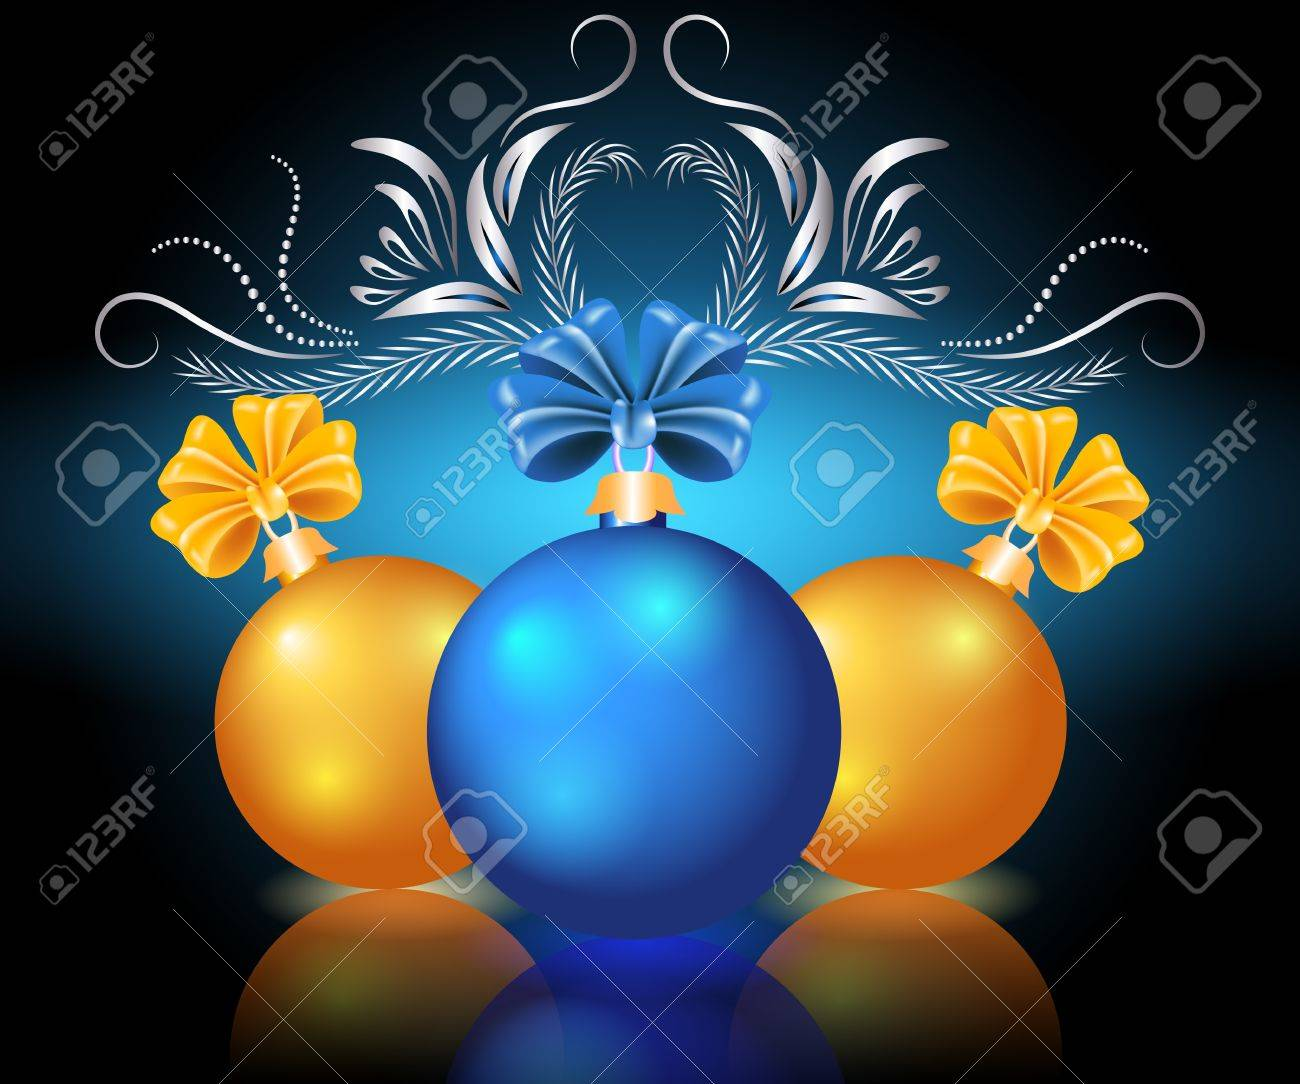 Christmas card with blue and yellow balls Stock Vector - 11149059